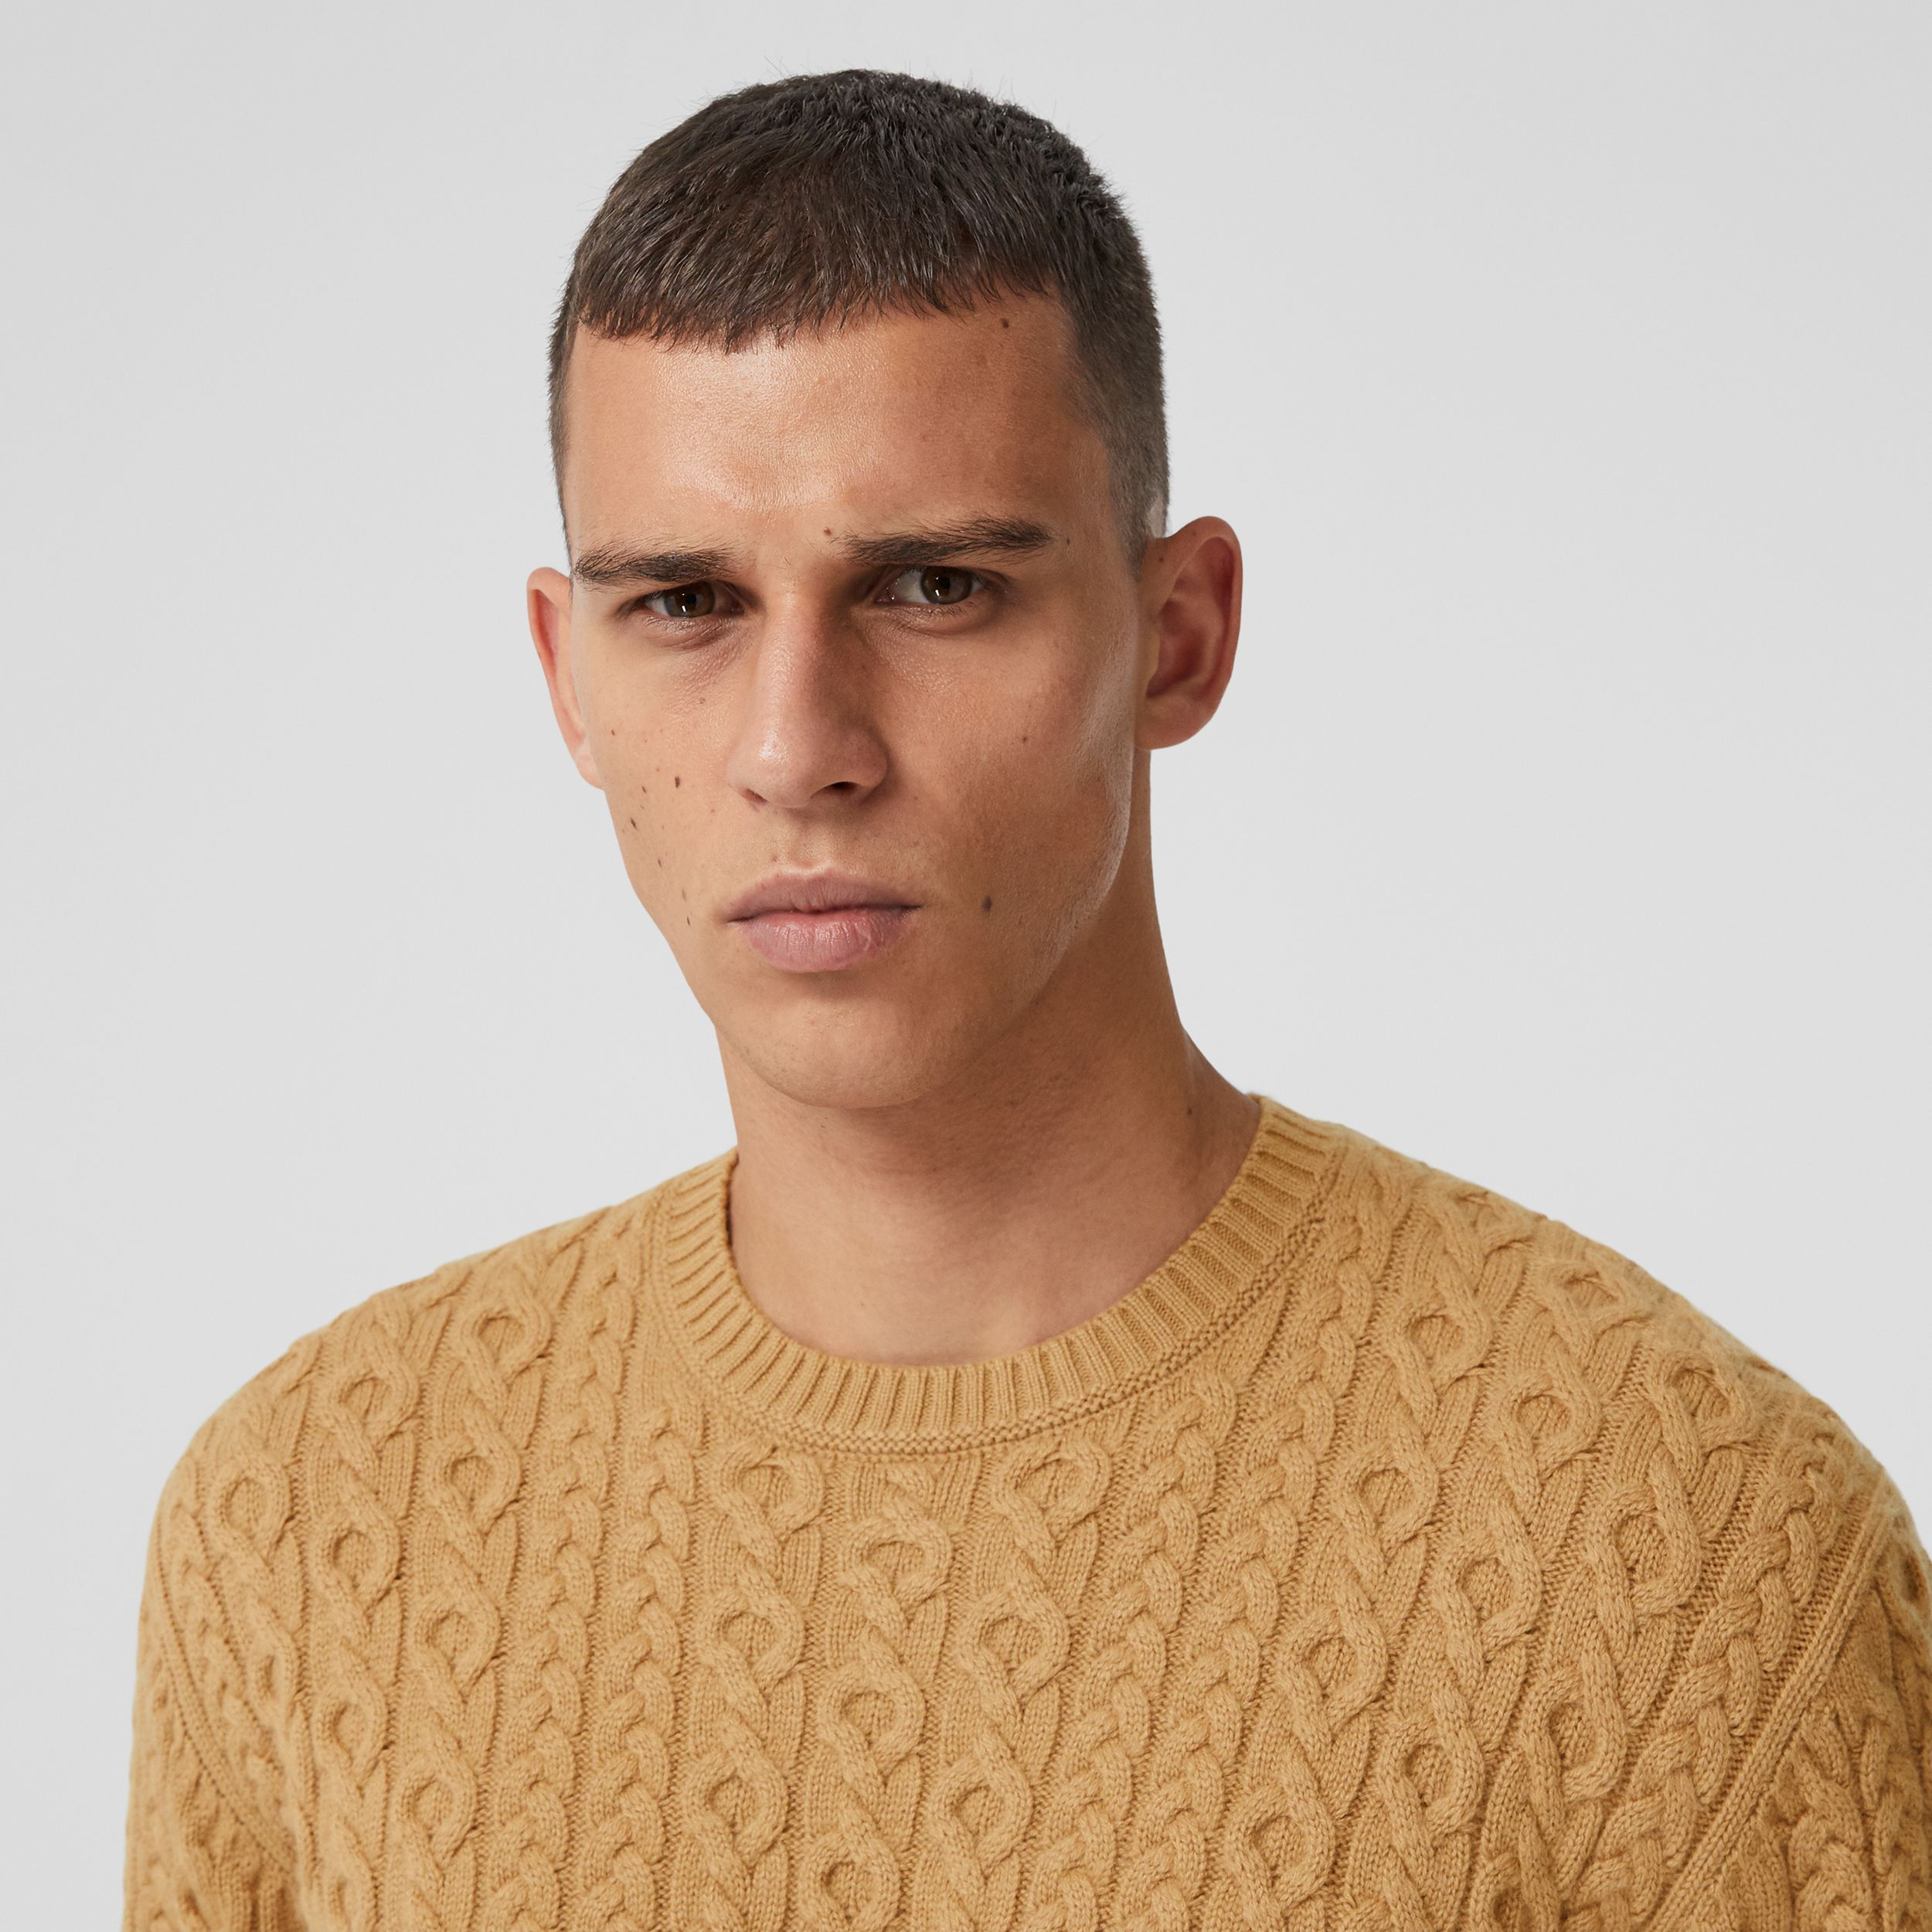 Cable Knit Wool Cashmere Sweater in Camel - Men | Burberry - 2